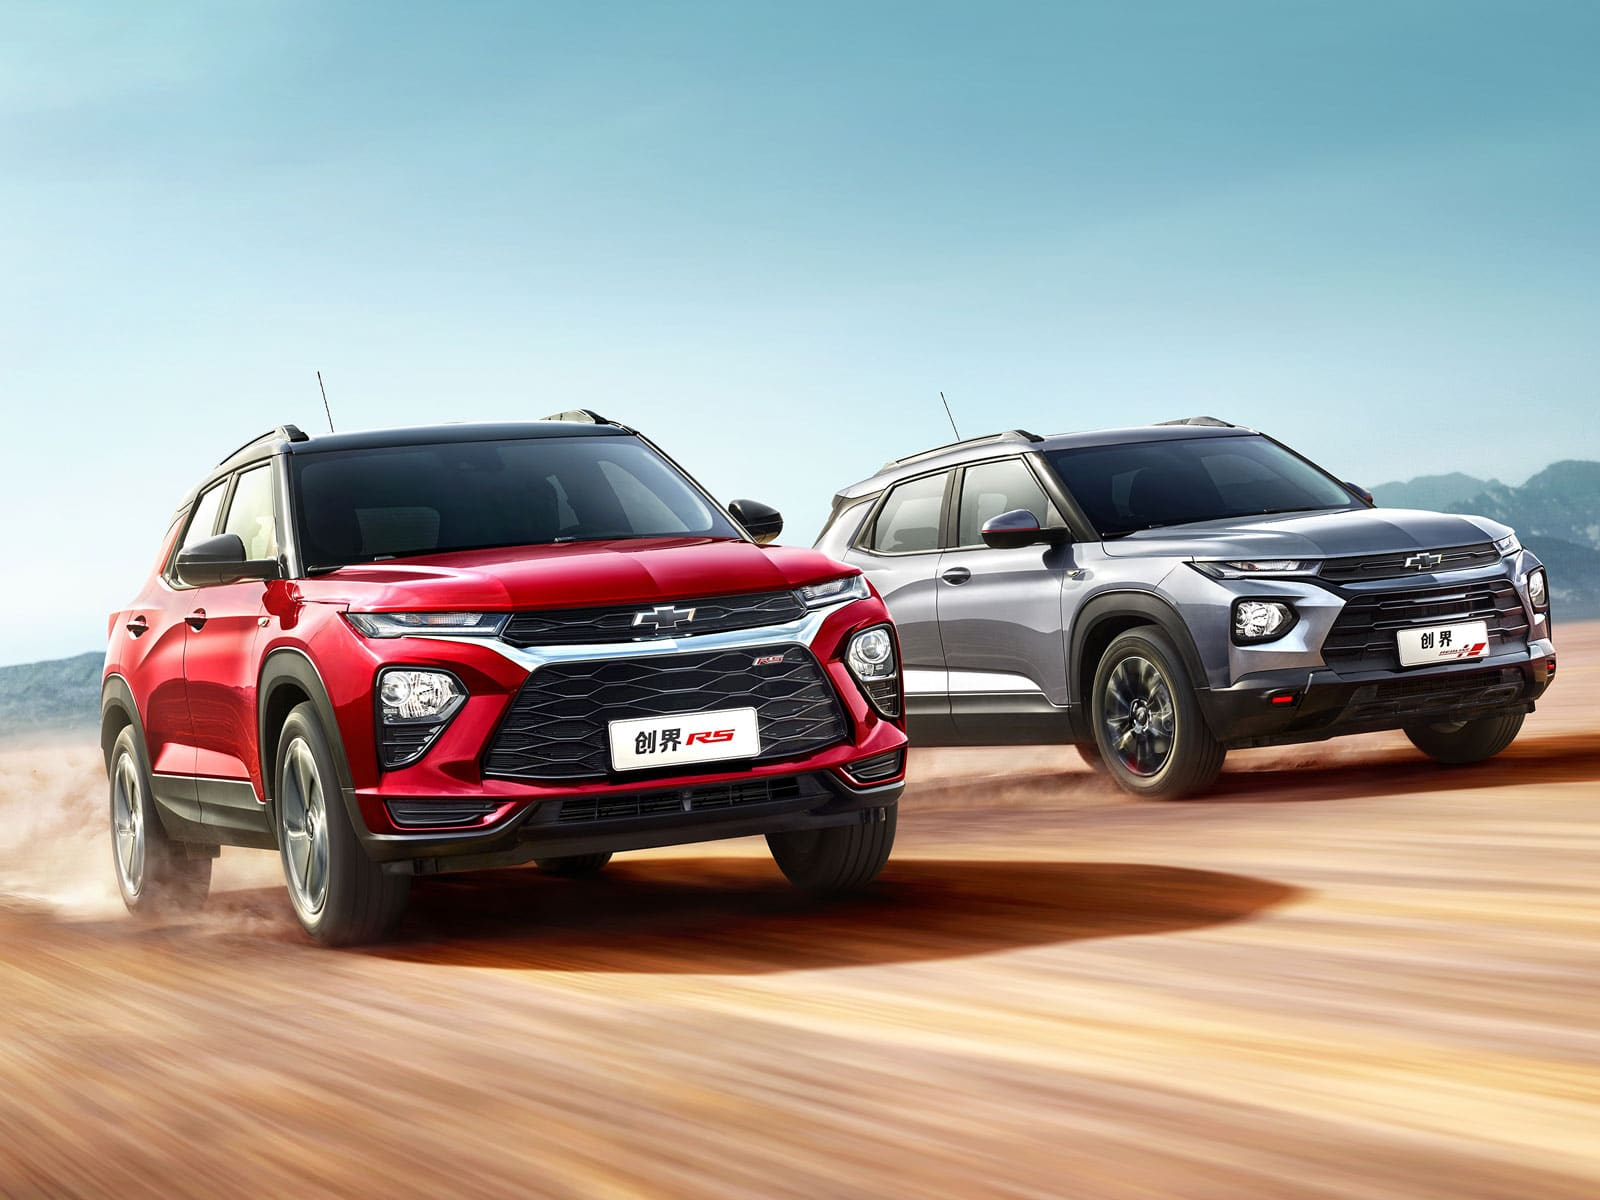 2021 chevrolet trailblazer to be unveiled at the los